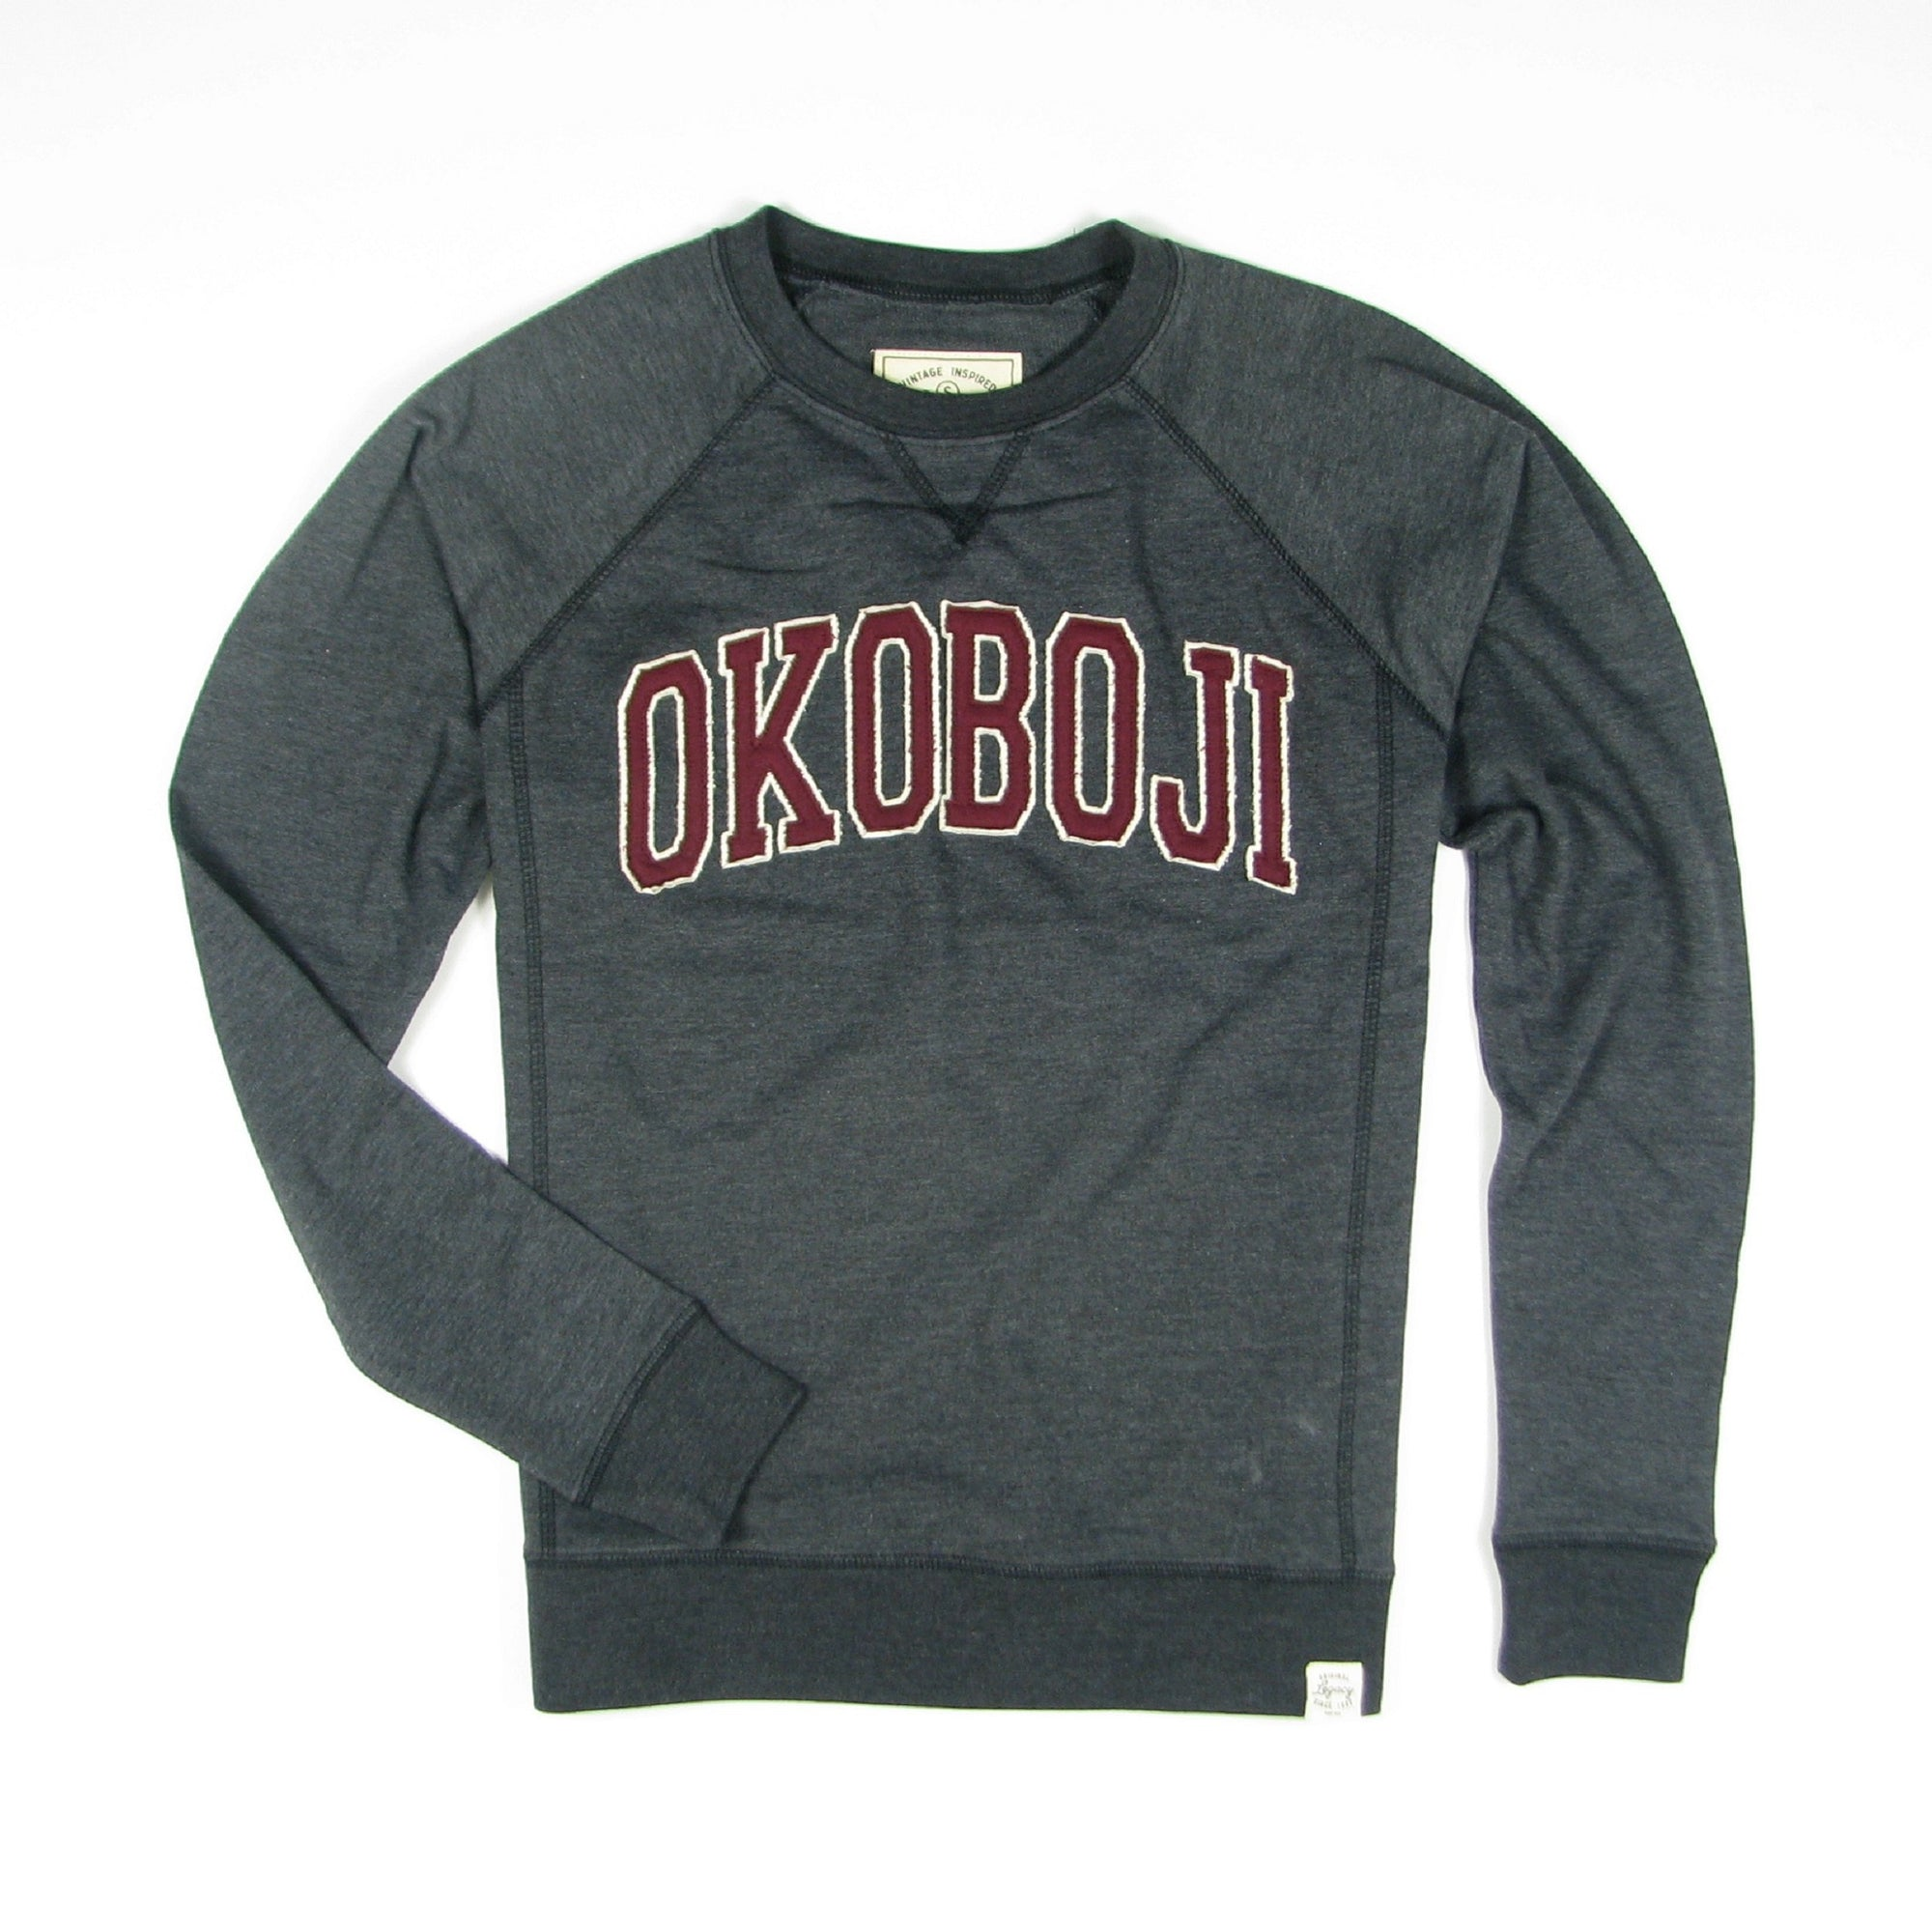 Okoboji Campus FRENCH TERRY FLEECE CREWNECK - Heather Black